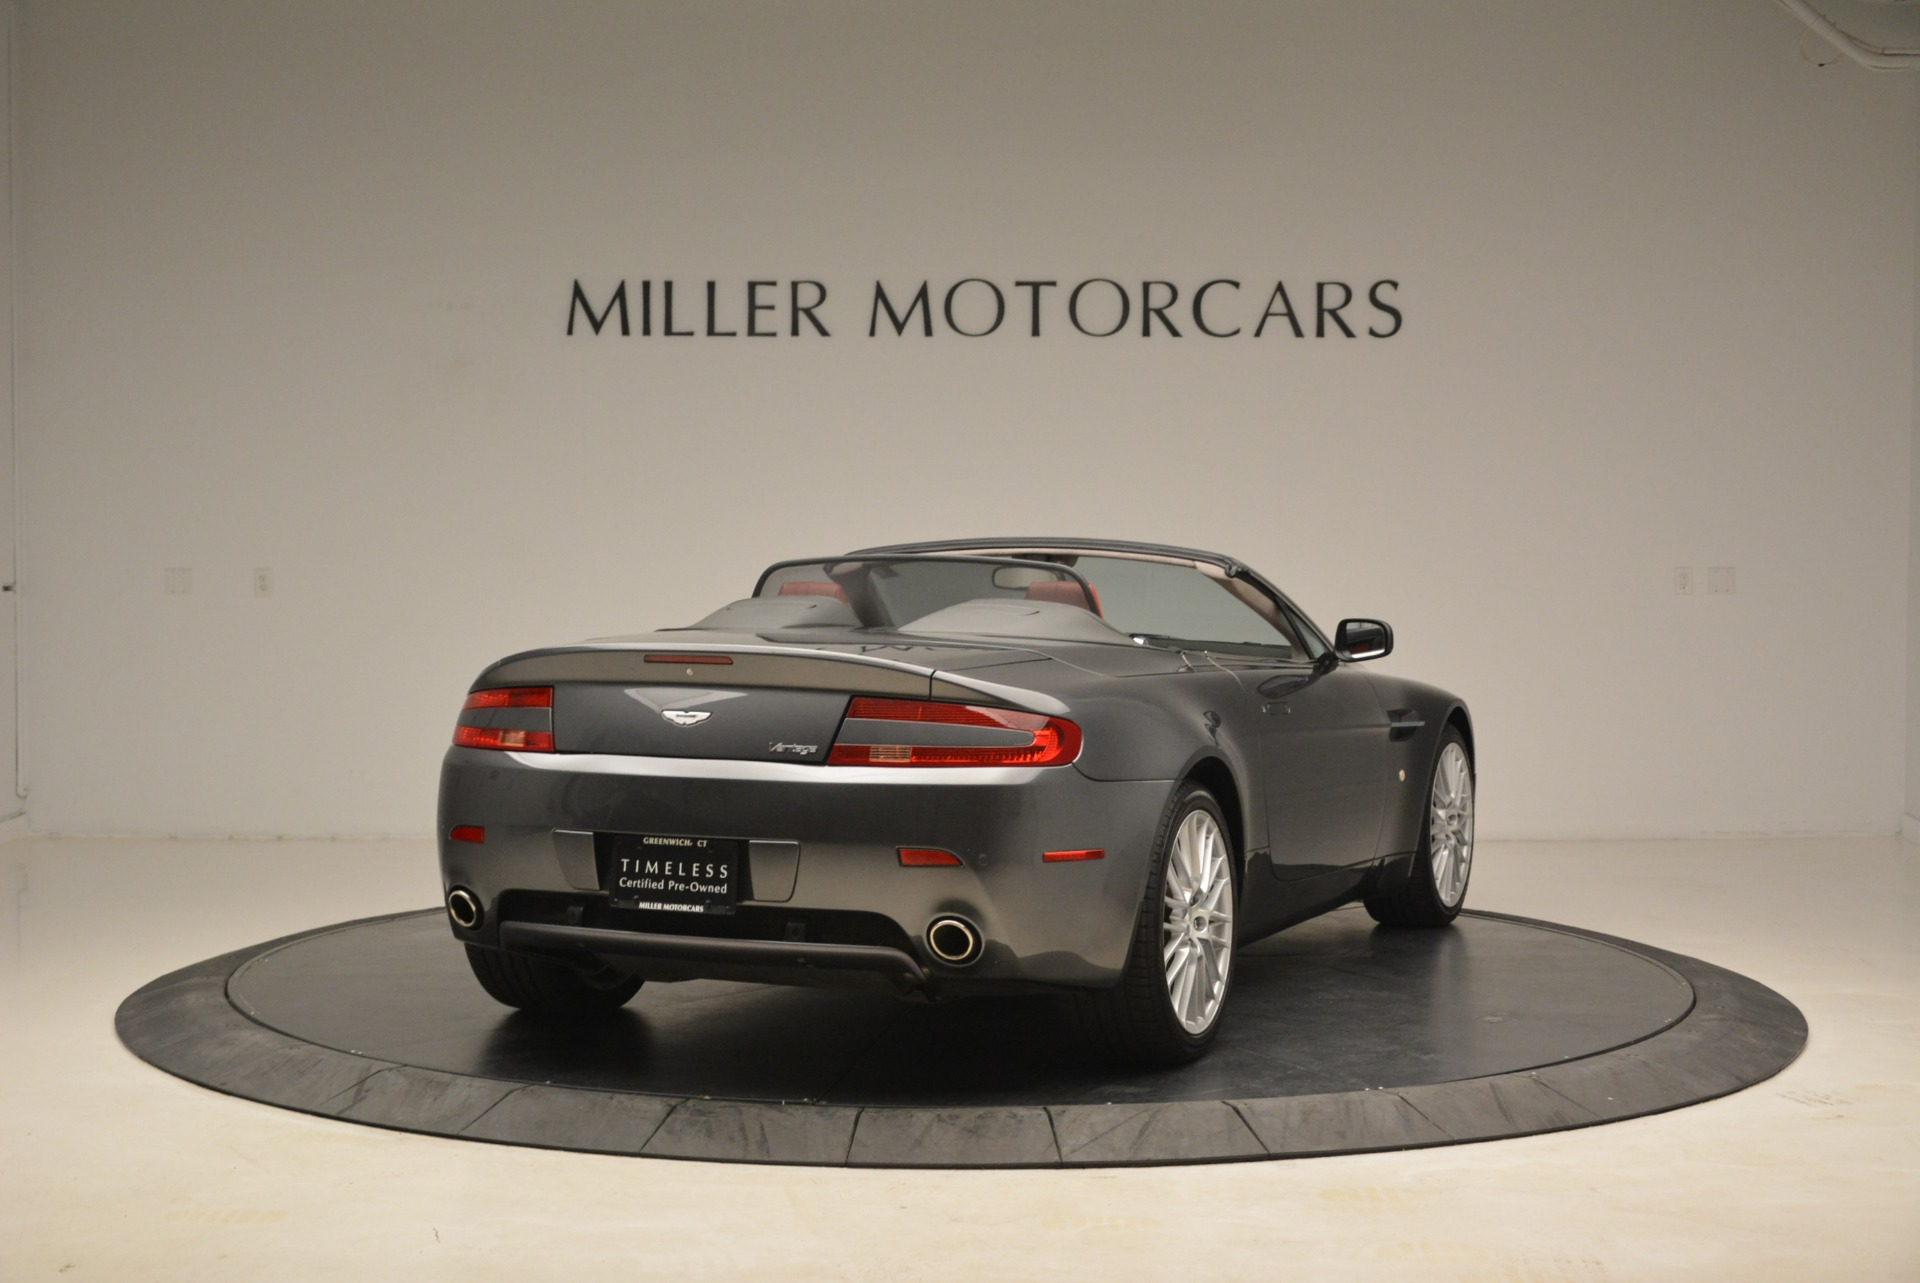 Used 2009 Aston Martin V8 Vantage Roadster For Sale In Greenwich, CT. Alfa Romeo of Greenwich, 7333 2123_p7